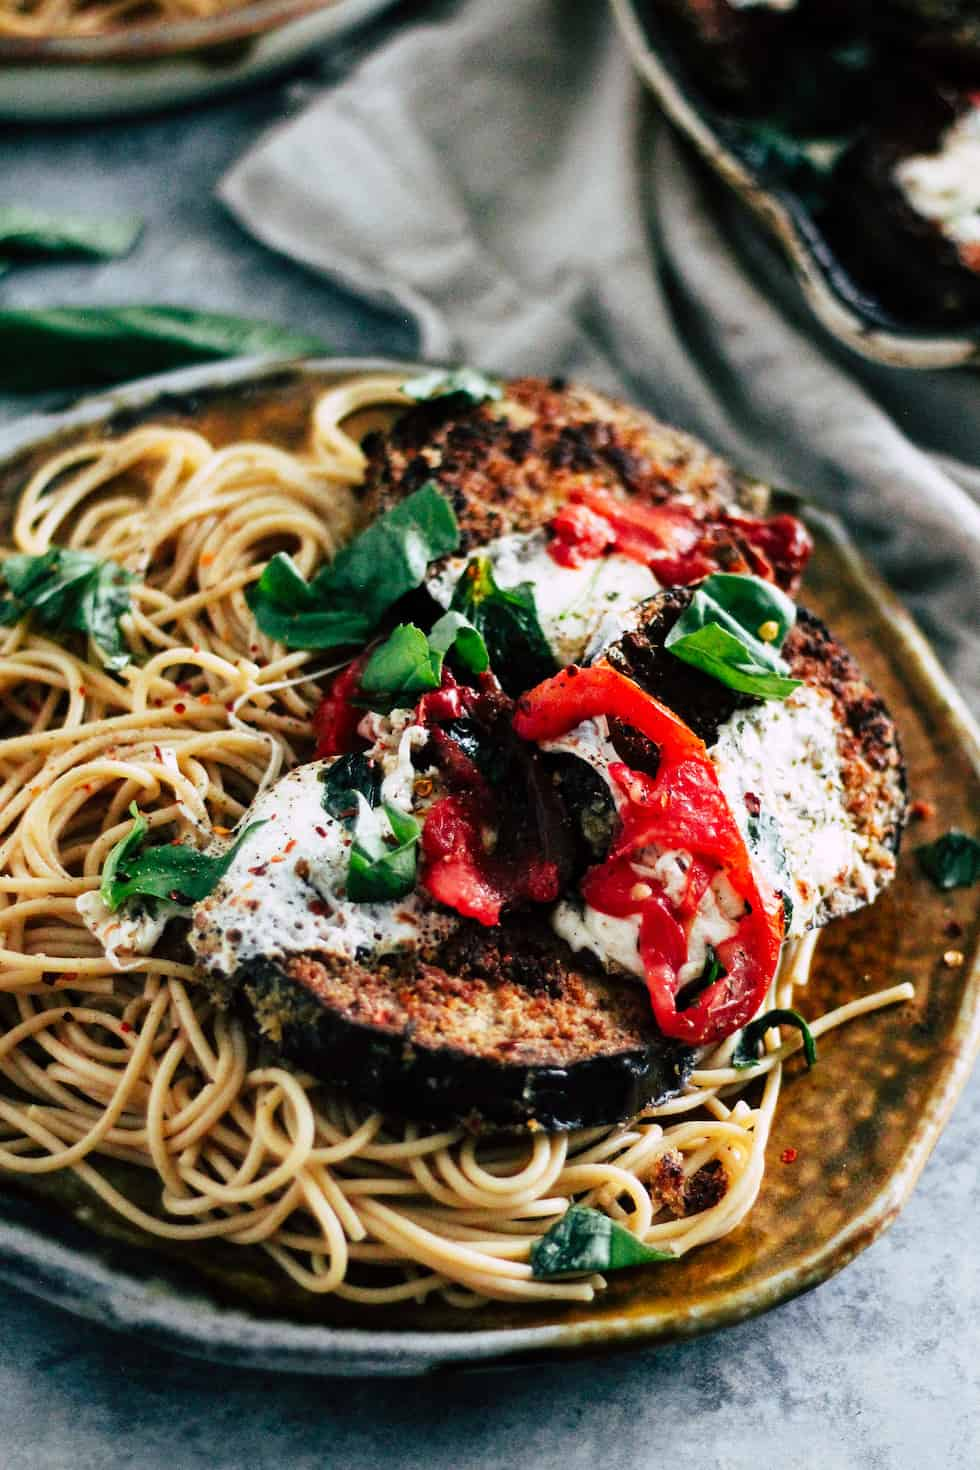 Yellow plate with eggplant over spaghetti.